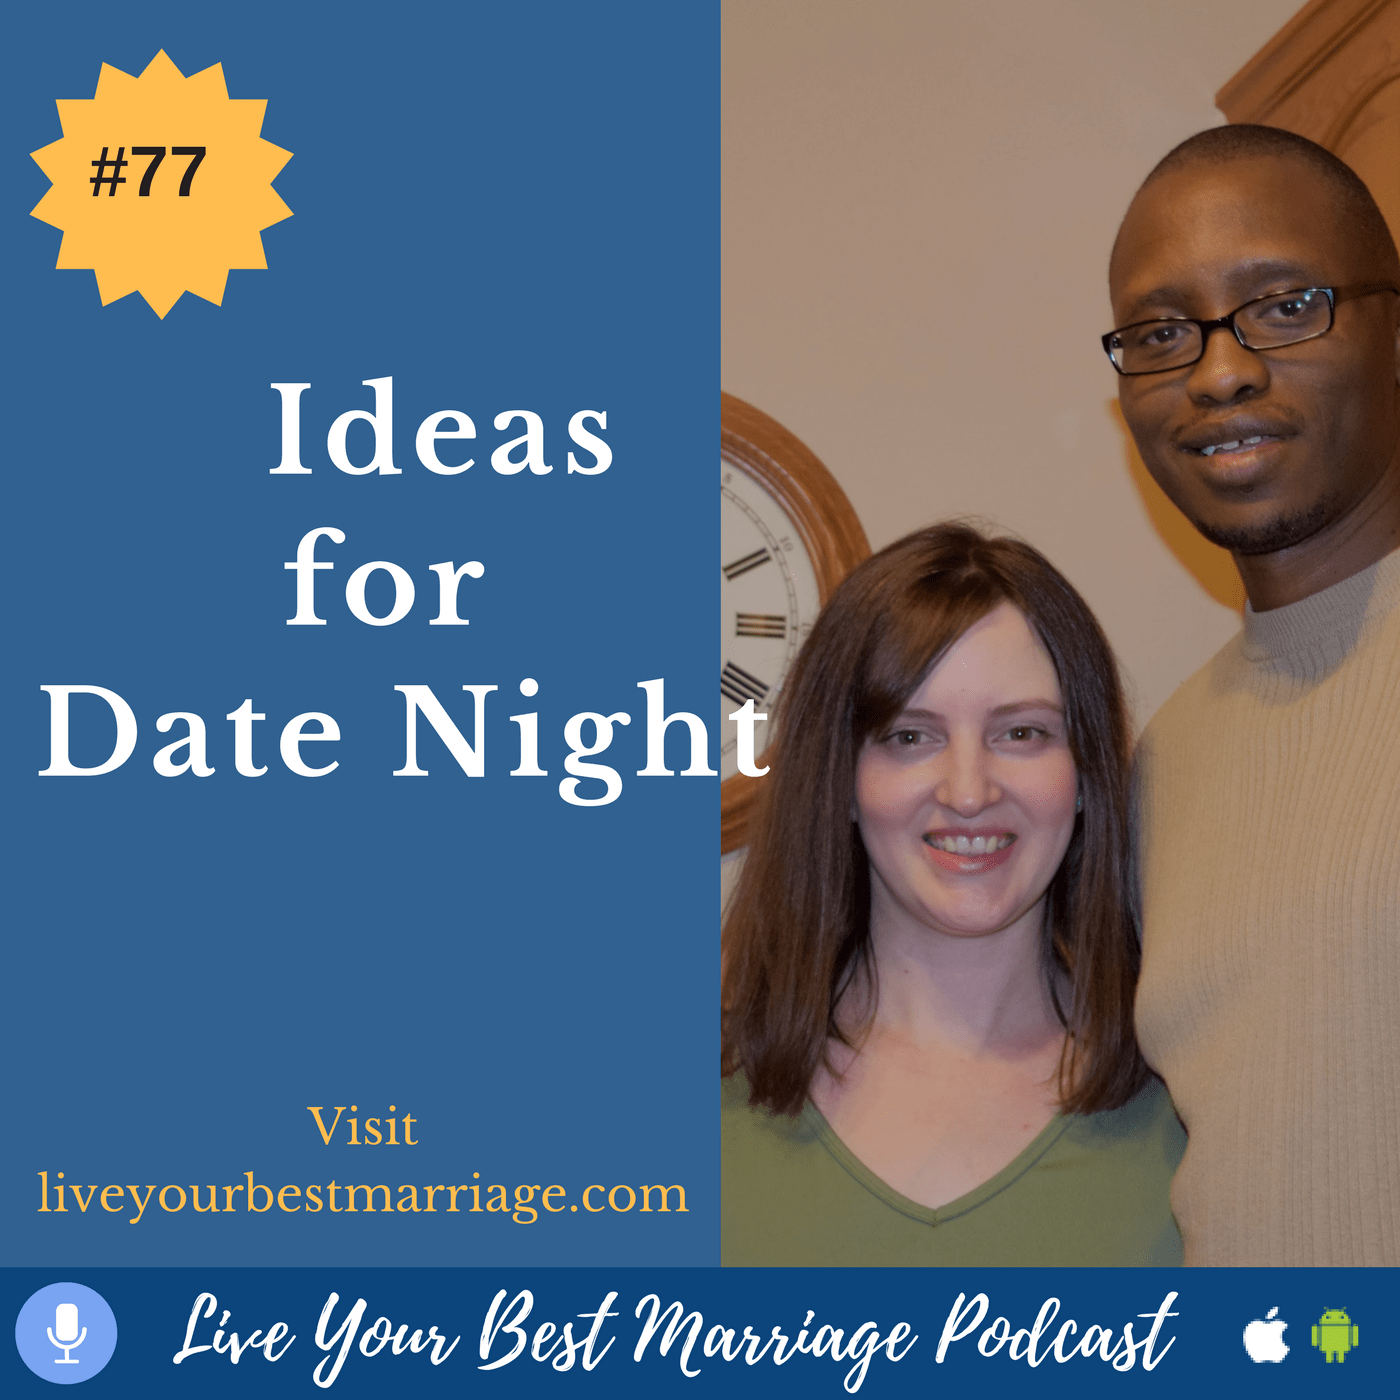 episode-77-ideas-for-date-night-audio_thumbnail.png